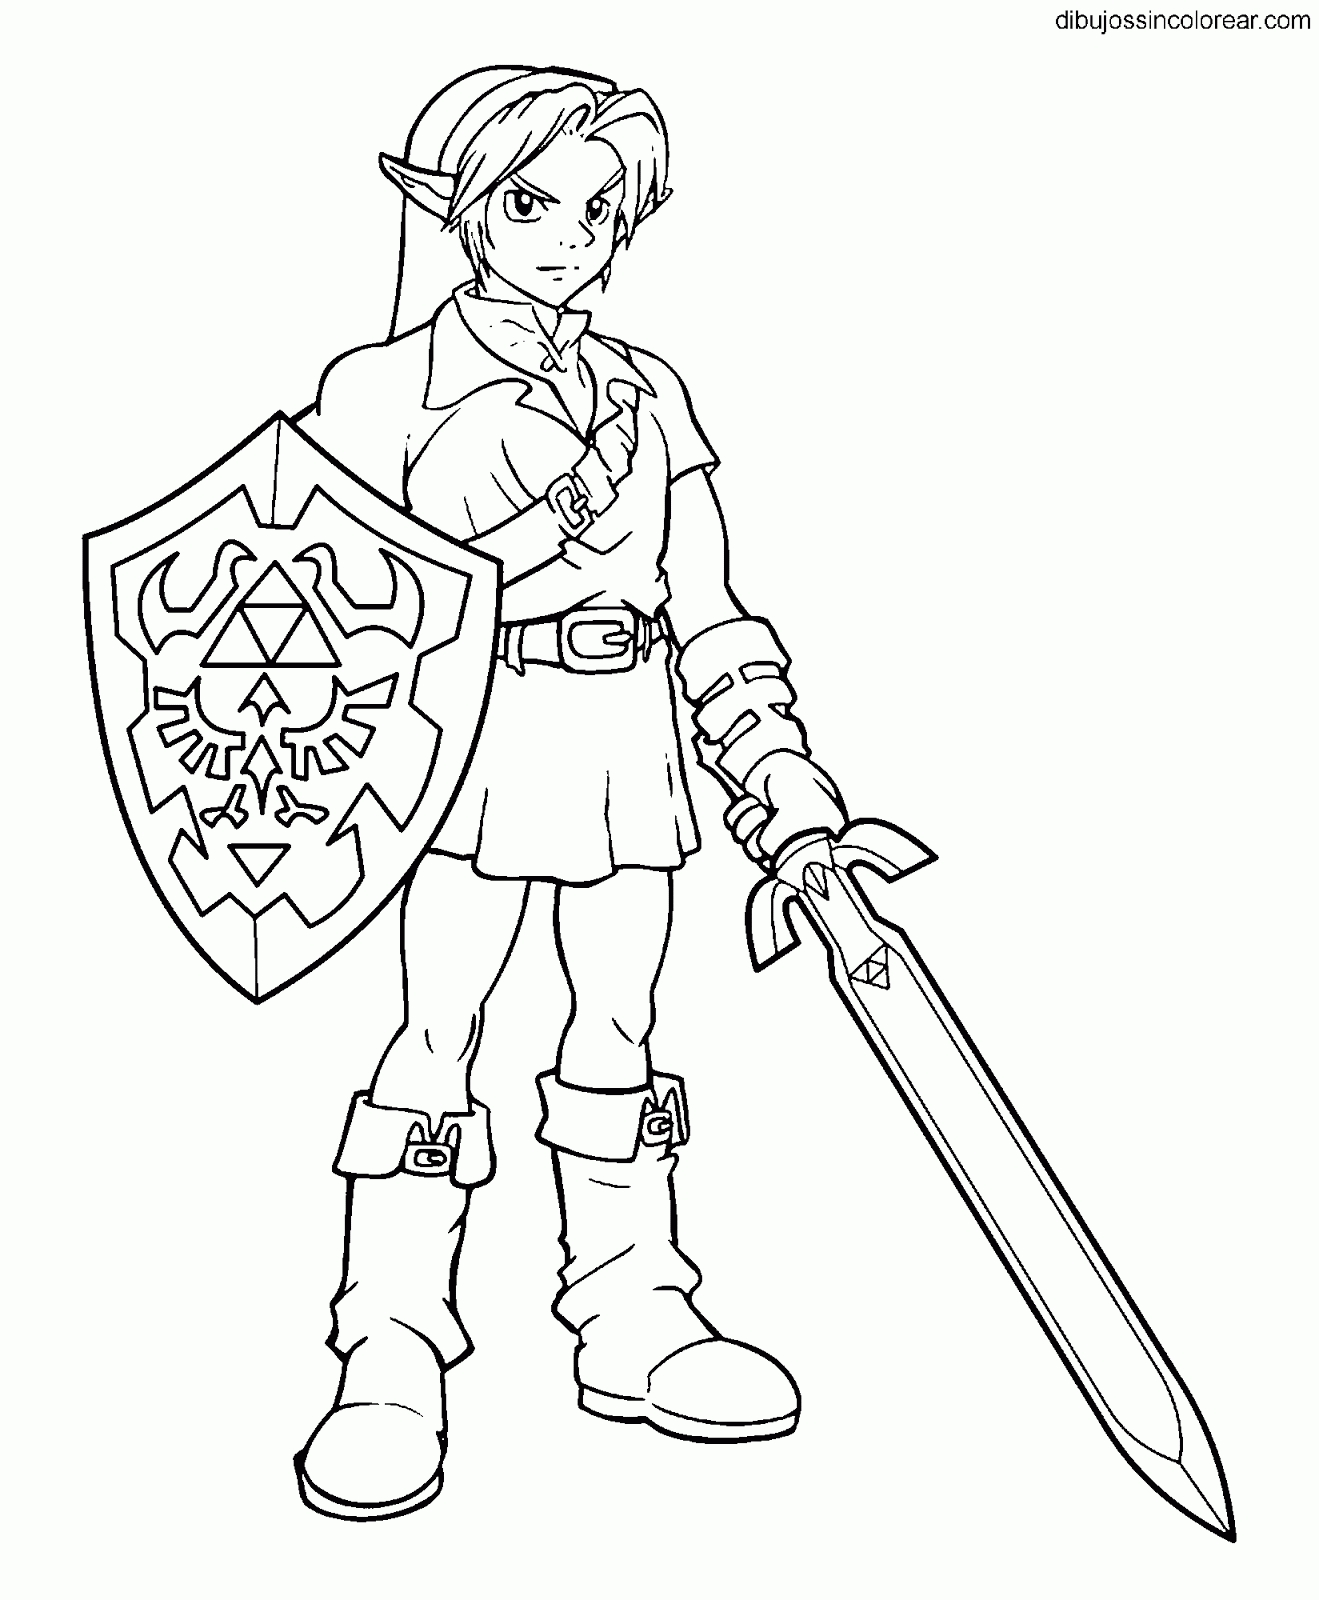 super smash bros coloring pages - dibujos de personajes de super smash